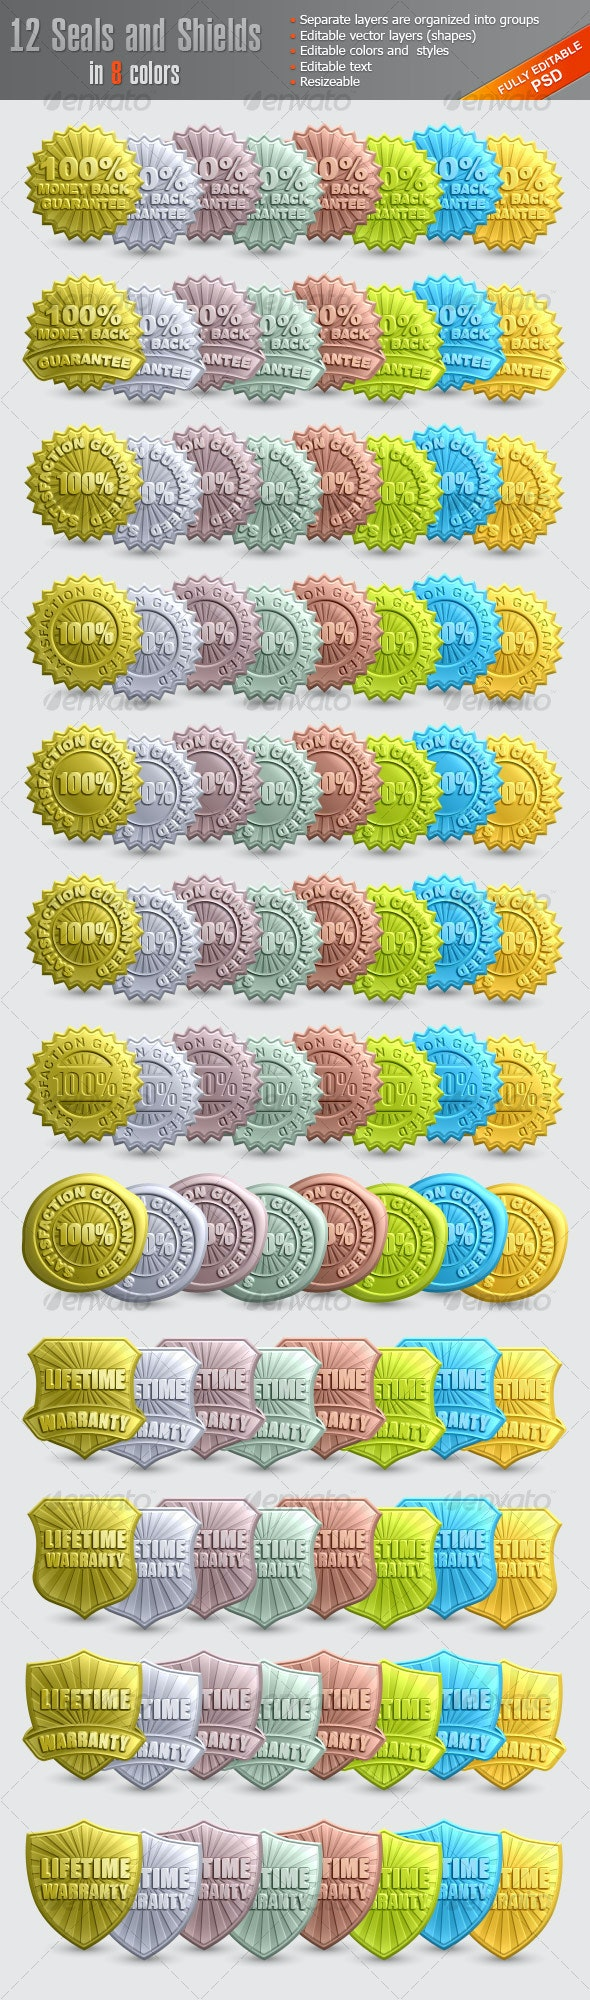 Embossed Seals and Shields - Web Elements